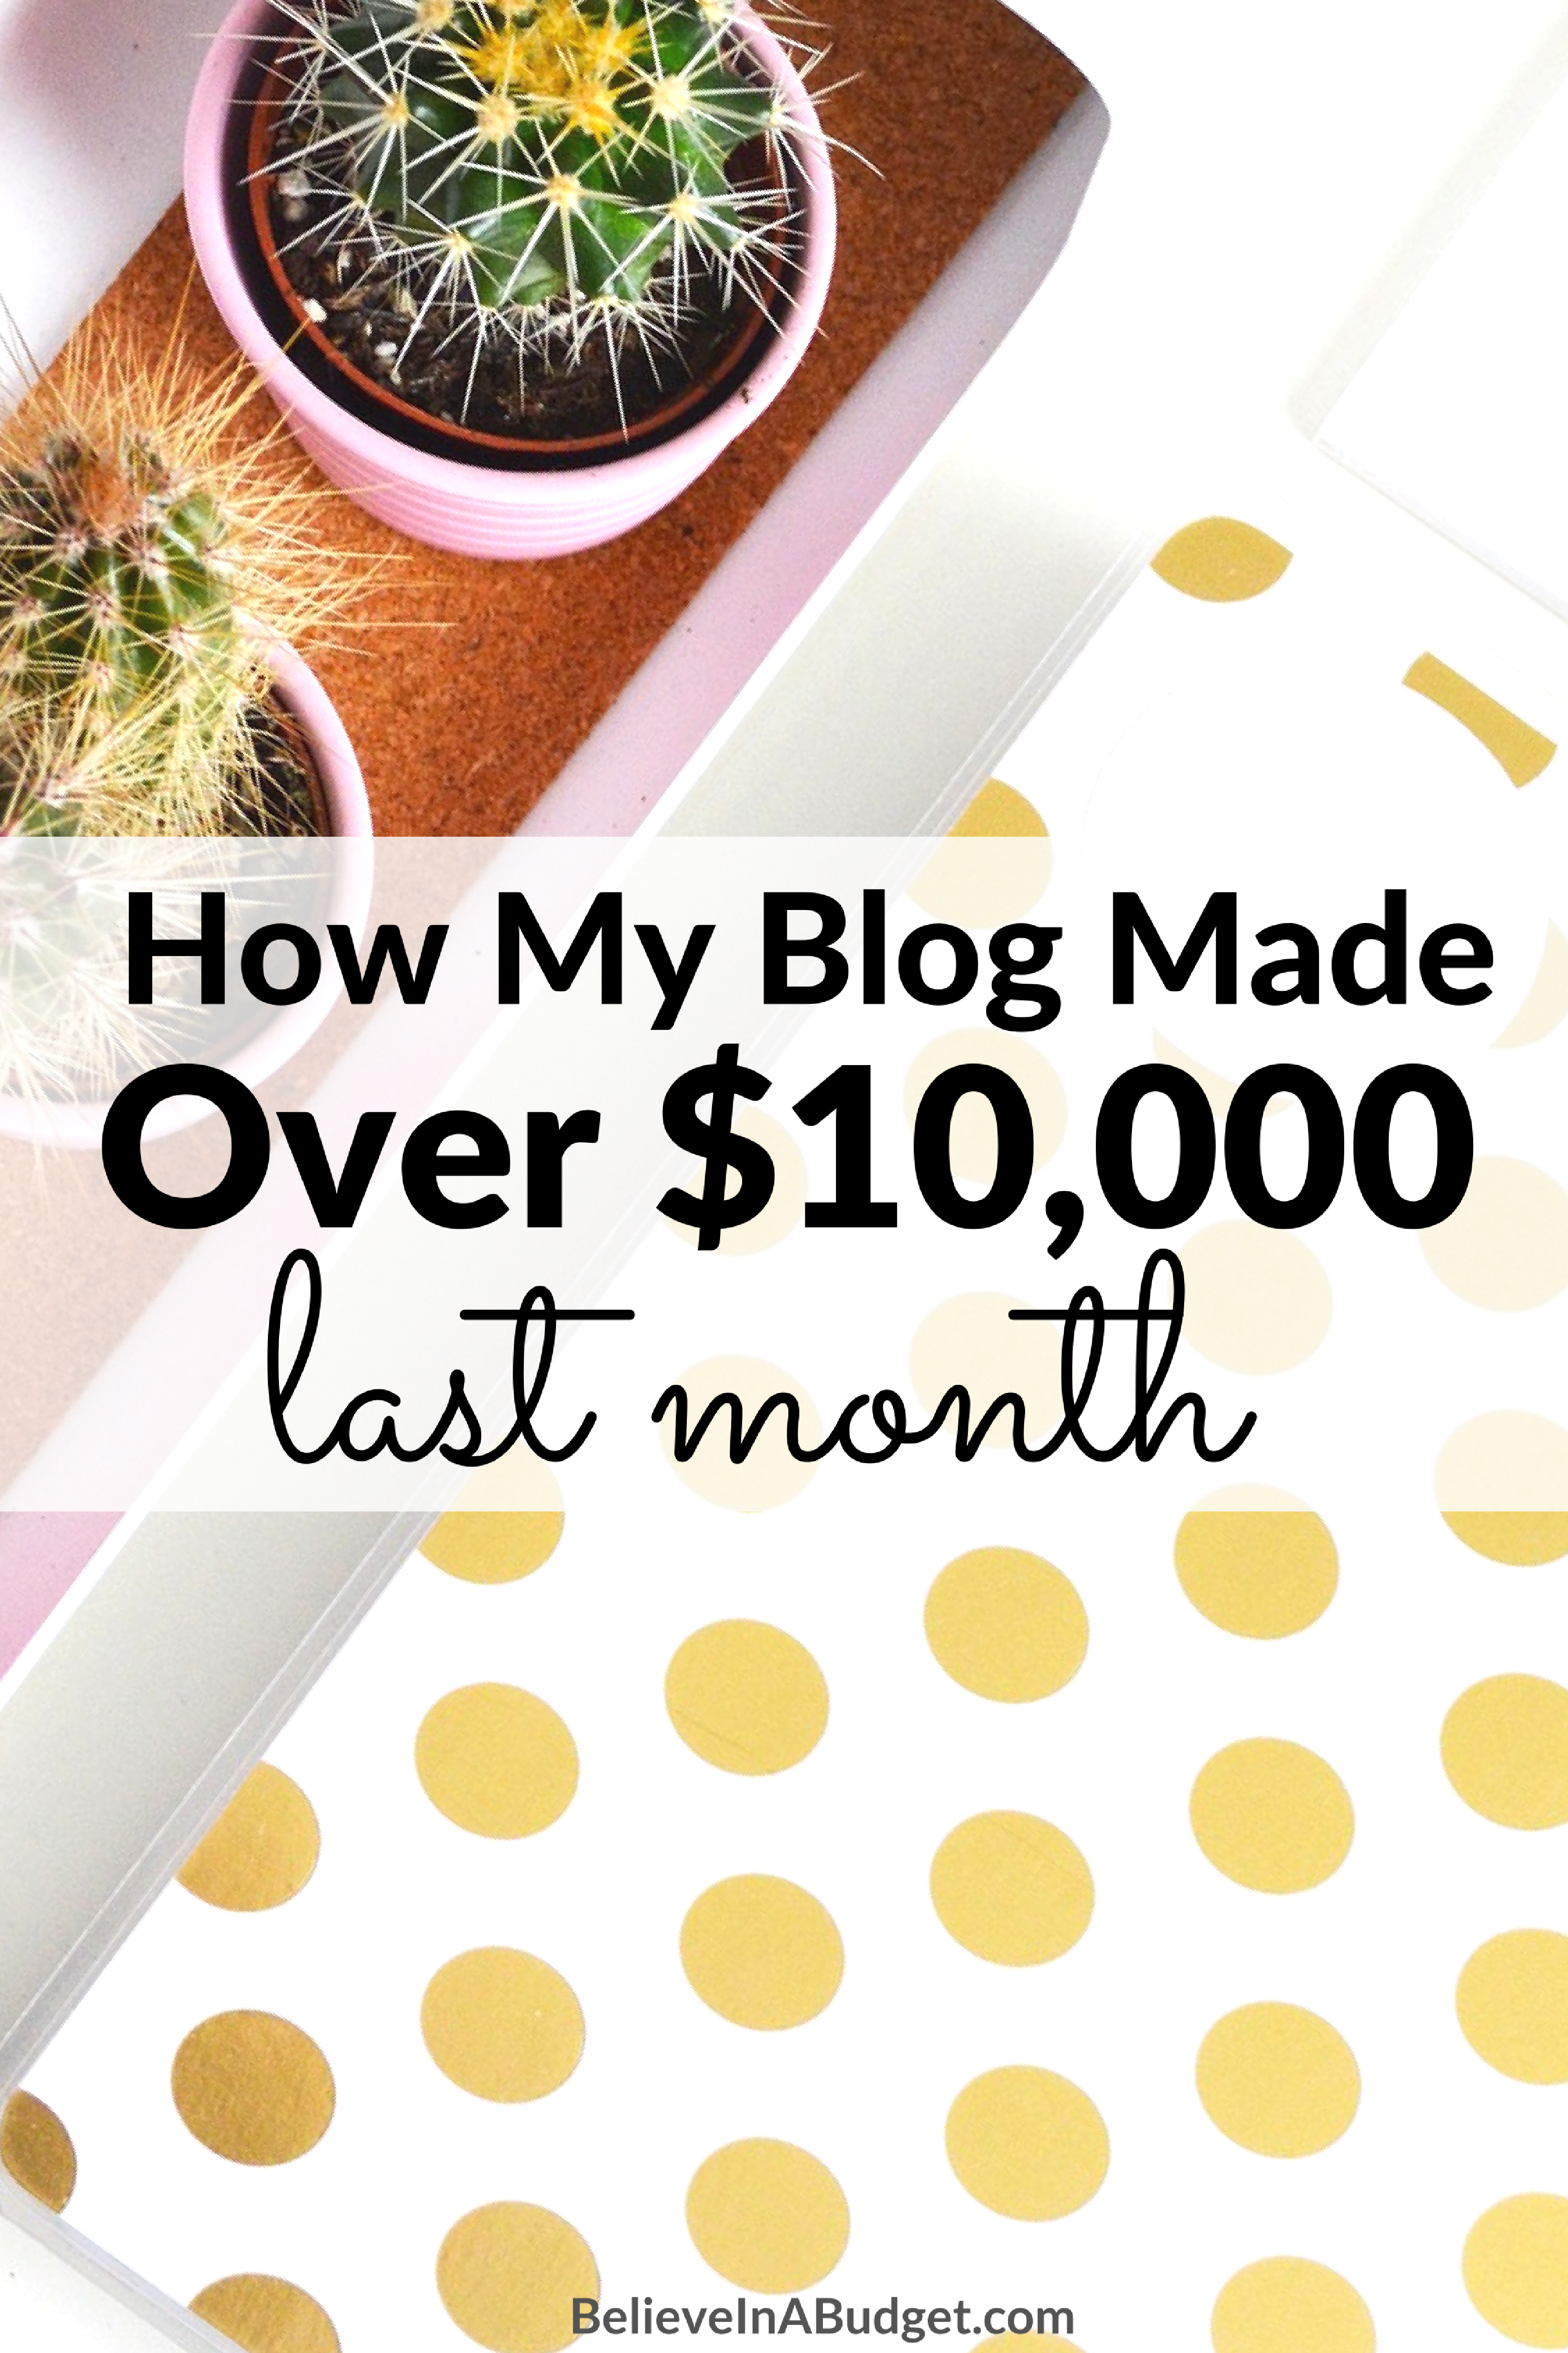 I've been a full time blogger for 13 months. I finally made over $10,000 from my blog while working from home. Here's how I make a full time living working from home and having a blog!